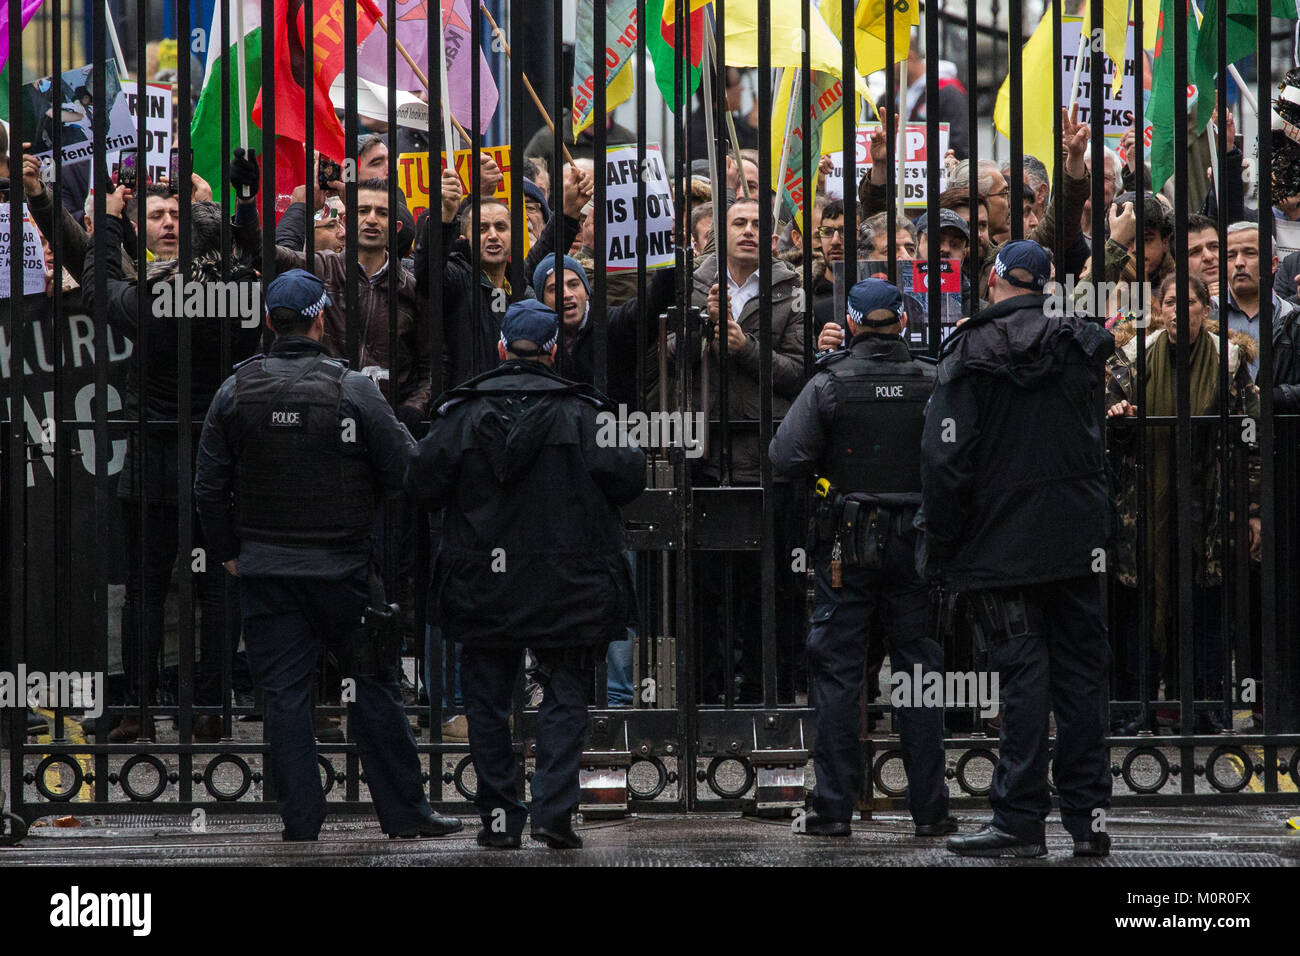 London, UK. 23rd Jan, 2018. Supporters of the Kurdish People's Council of Britain protest outside Downing Street Stock Photo